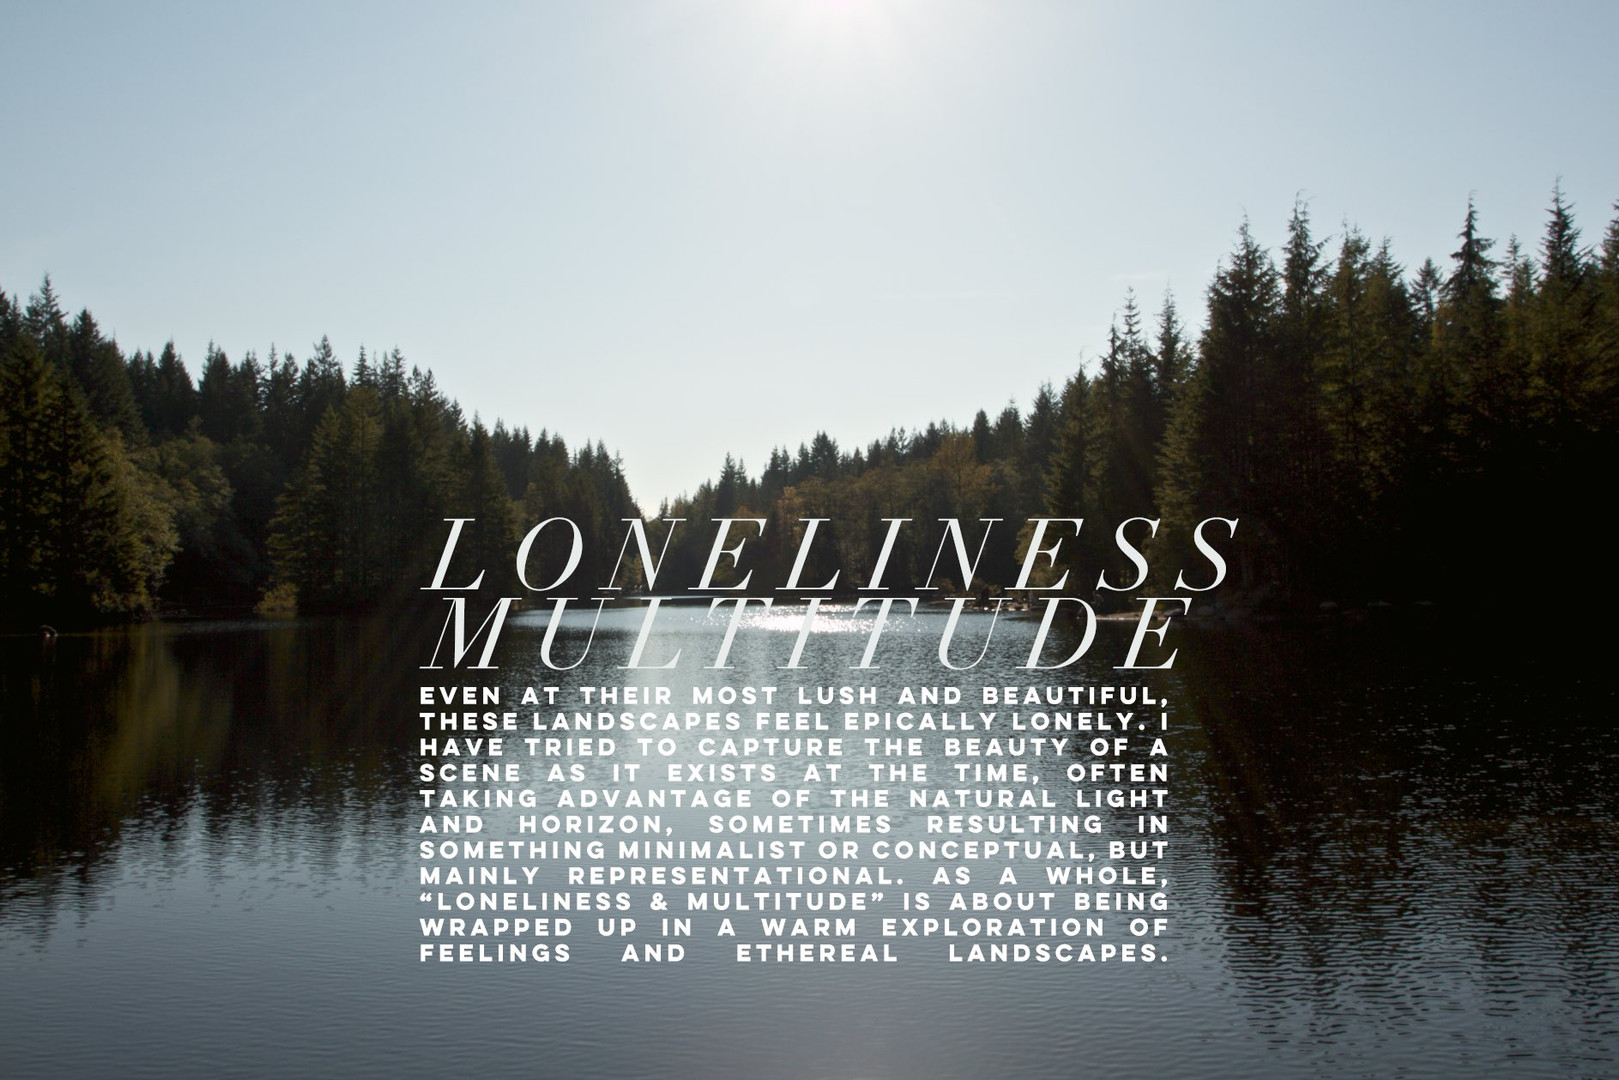 loneliness-multitude0_cover_50pc_q7.jpg